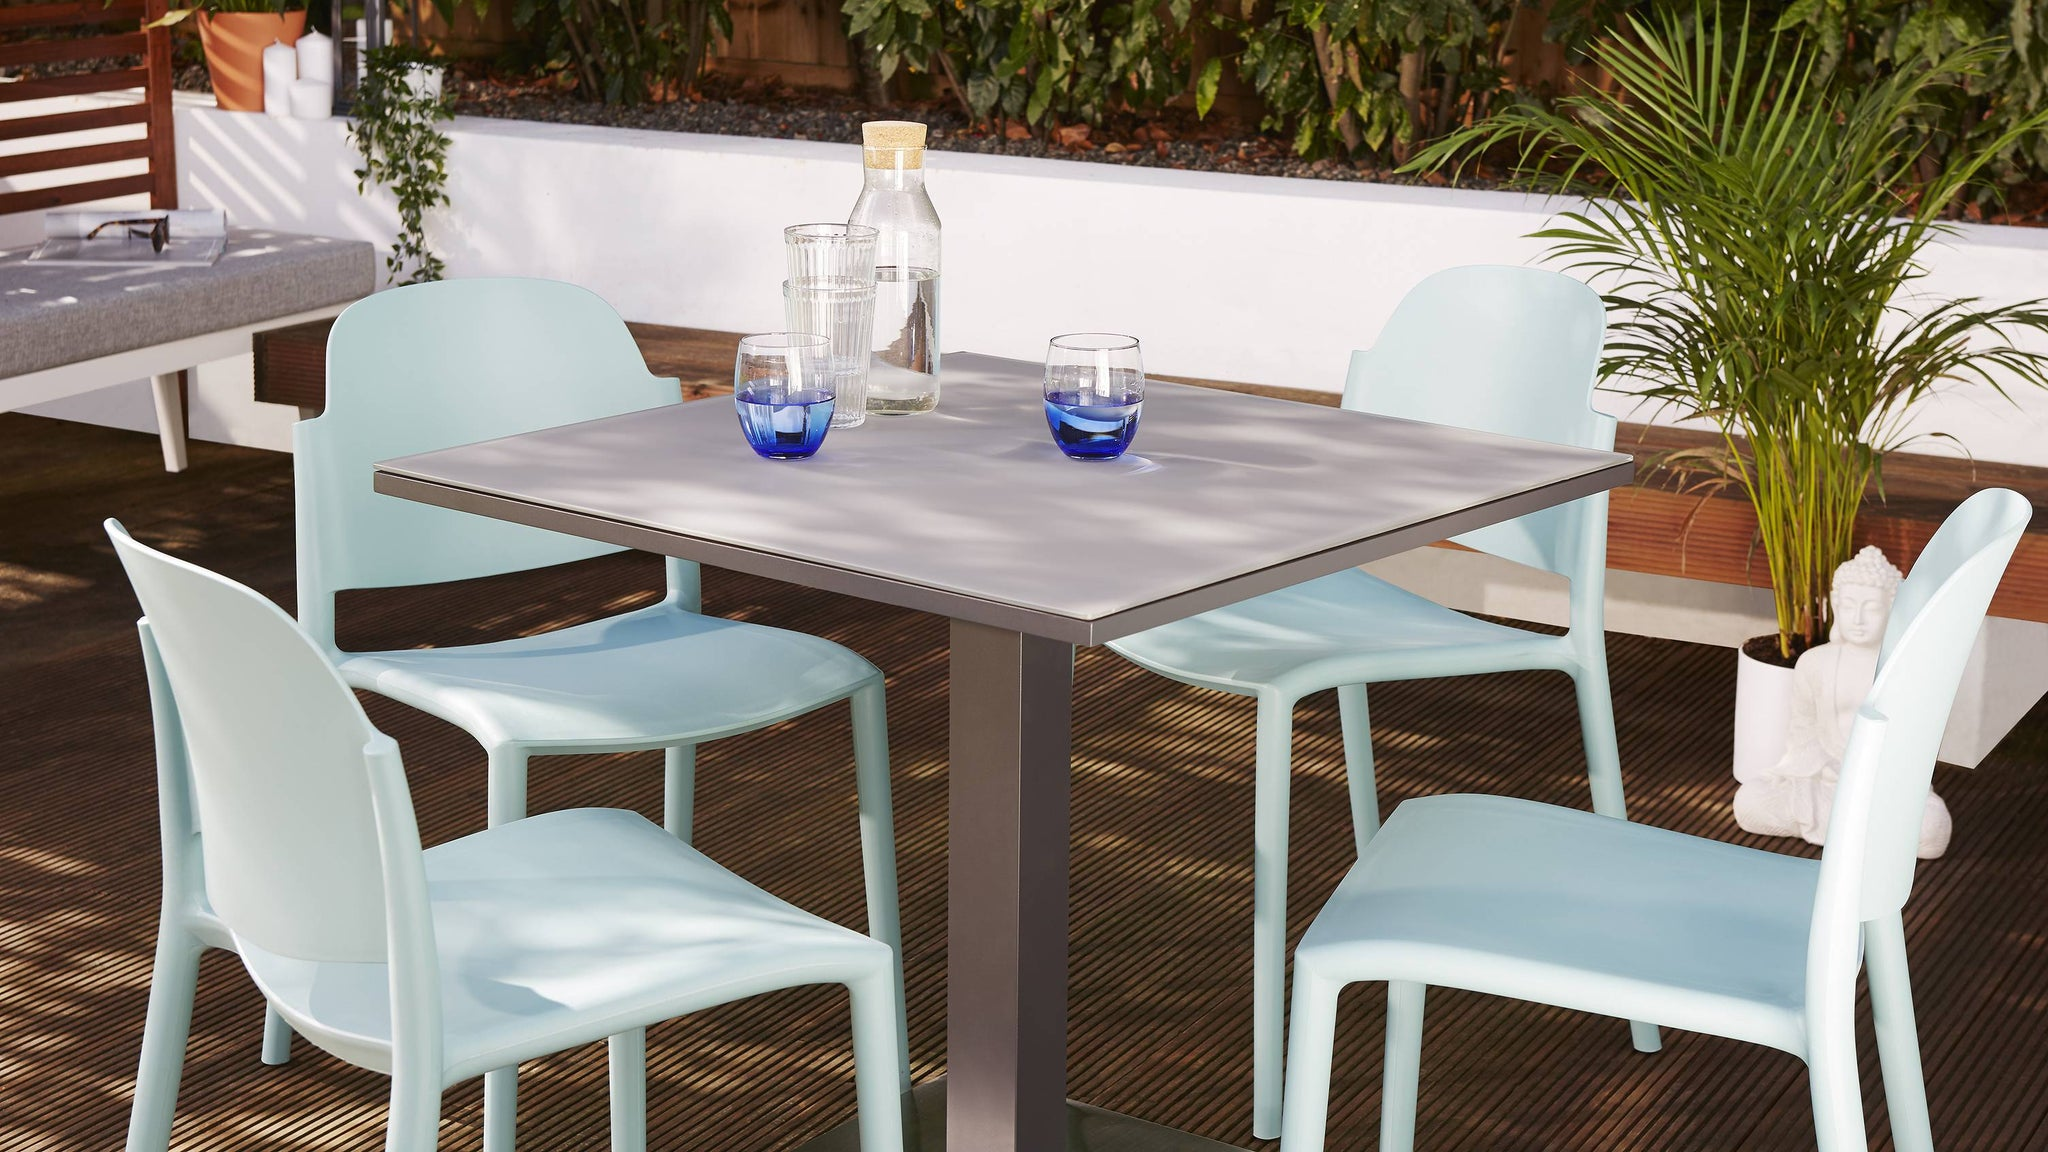 Weatherproof garden dining set